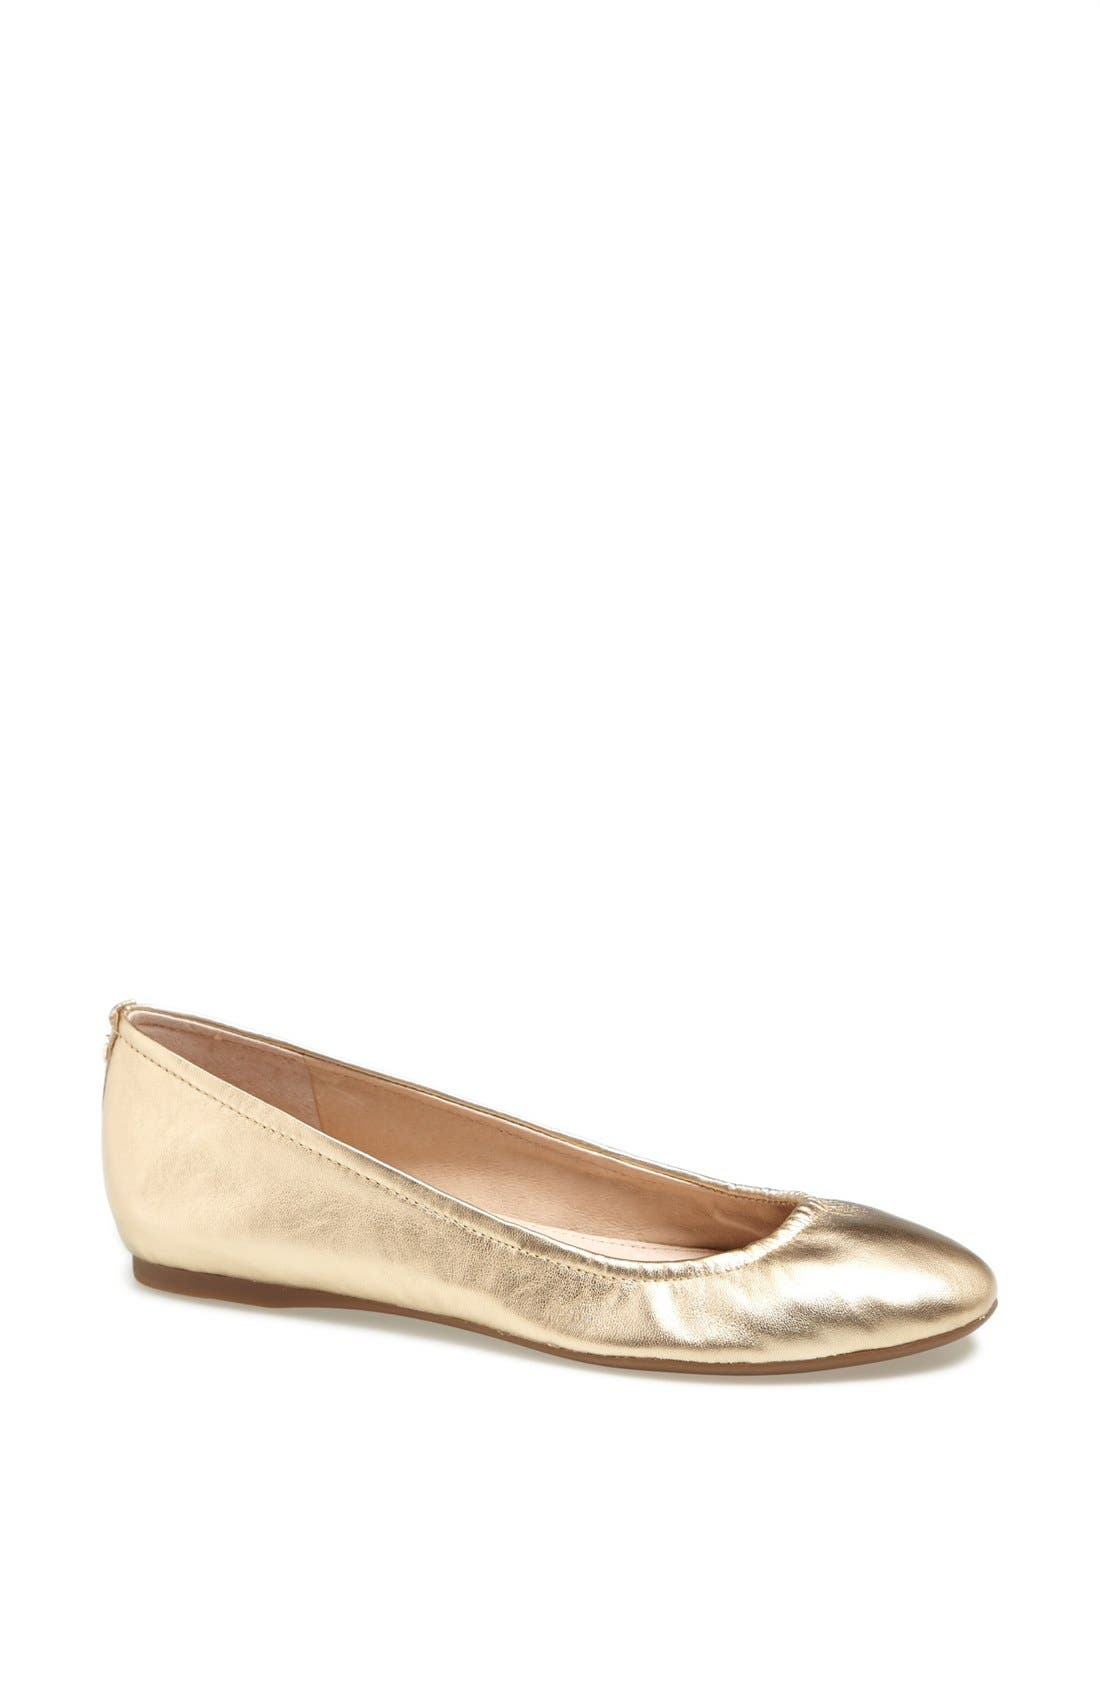 Alternate Image 1 Selected - Sam Edelman 'Noah' Flat